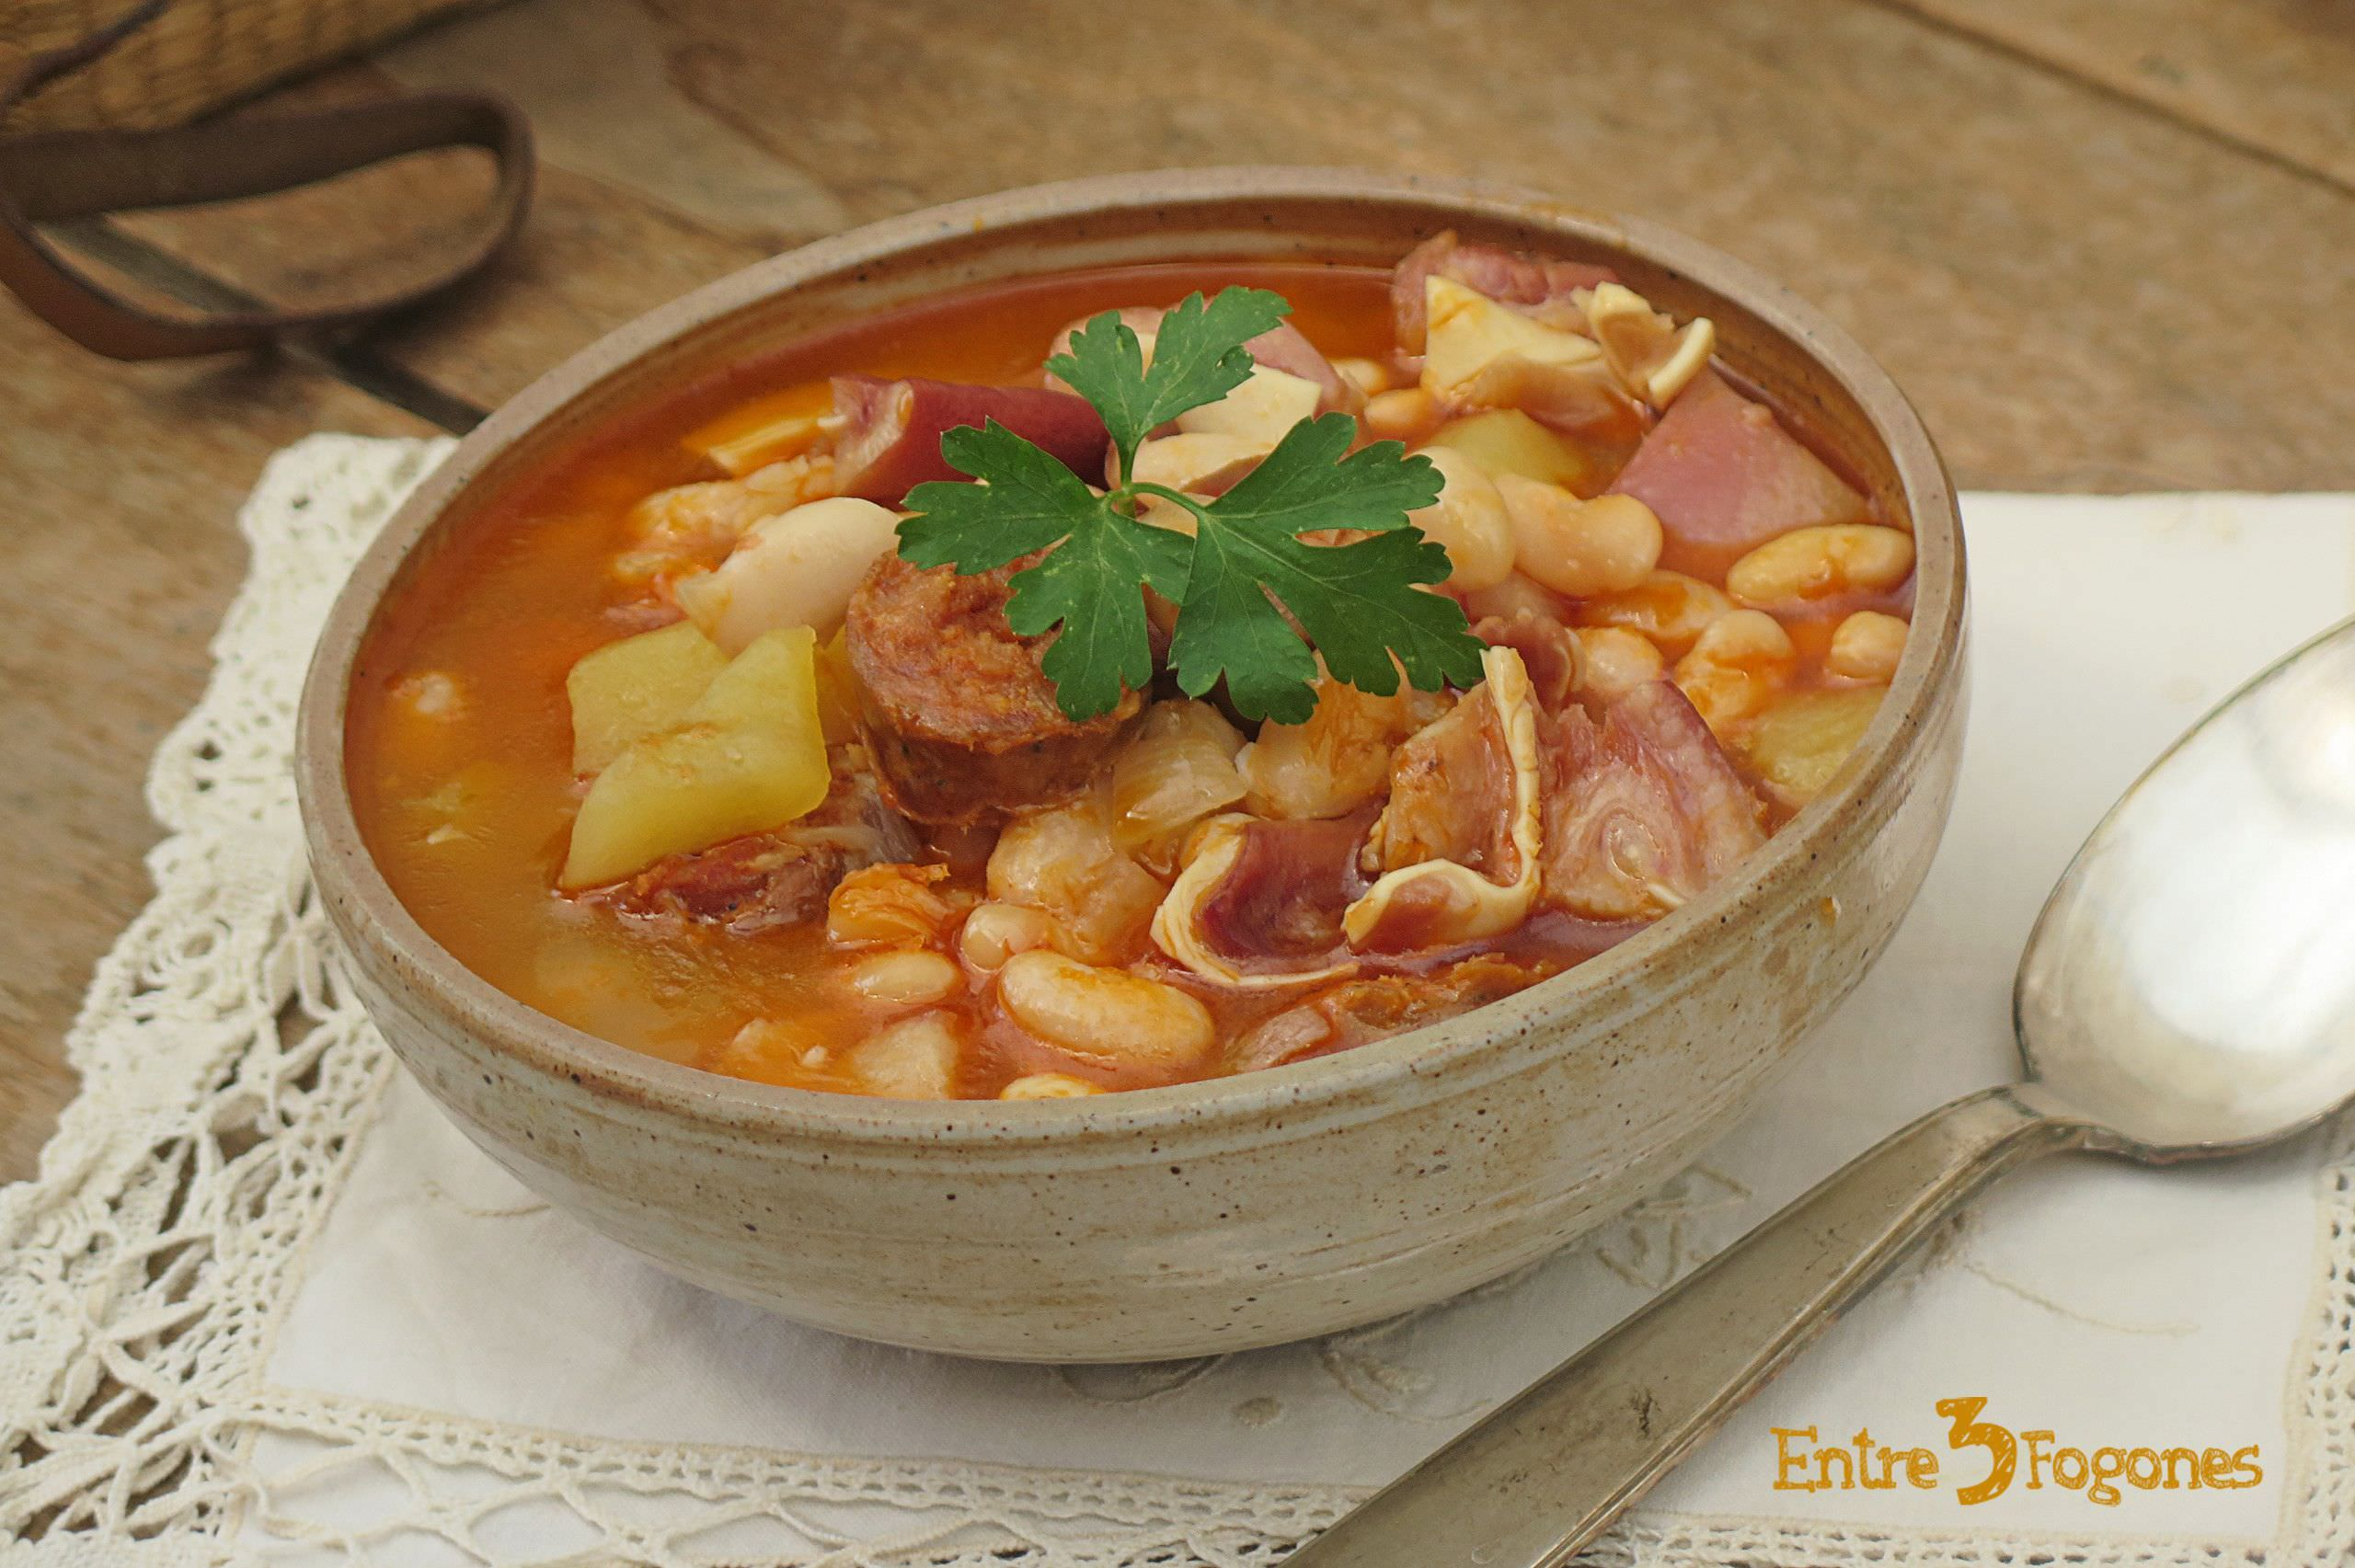 Photo of Potaje de Habichuelas con Chorizo y Oreja de Cerdo